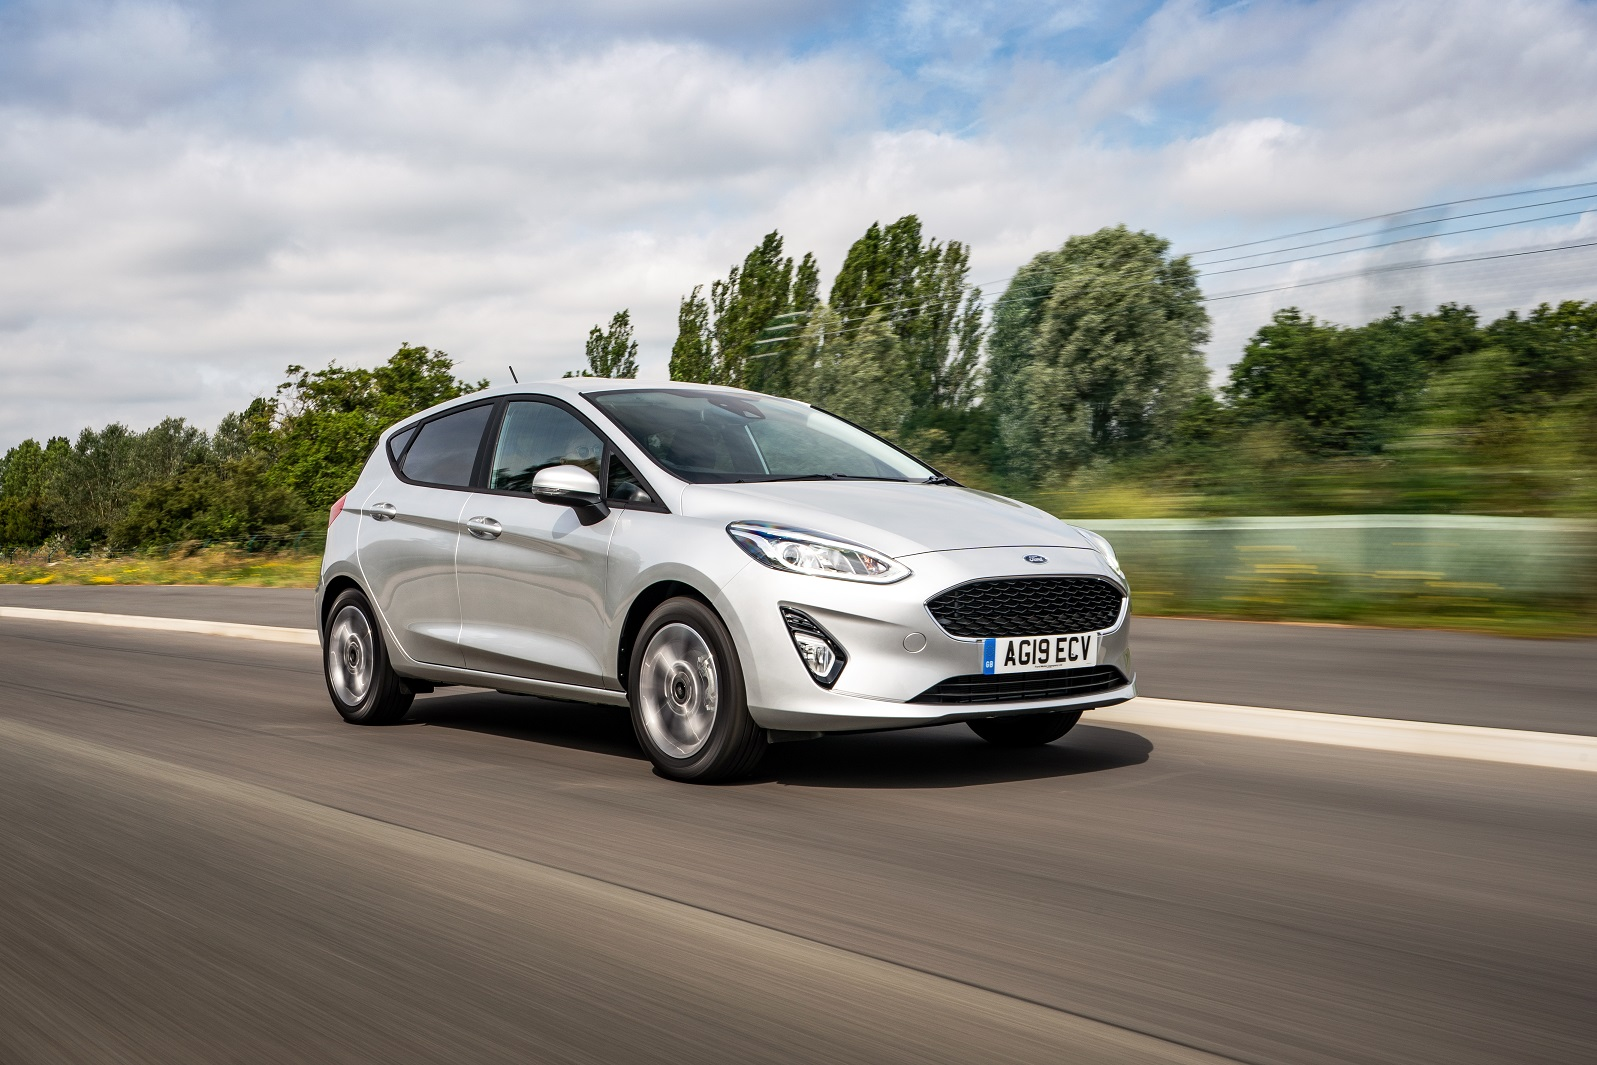 Ford Fiesta Trend exterior dynamic